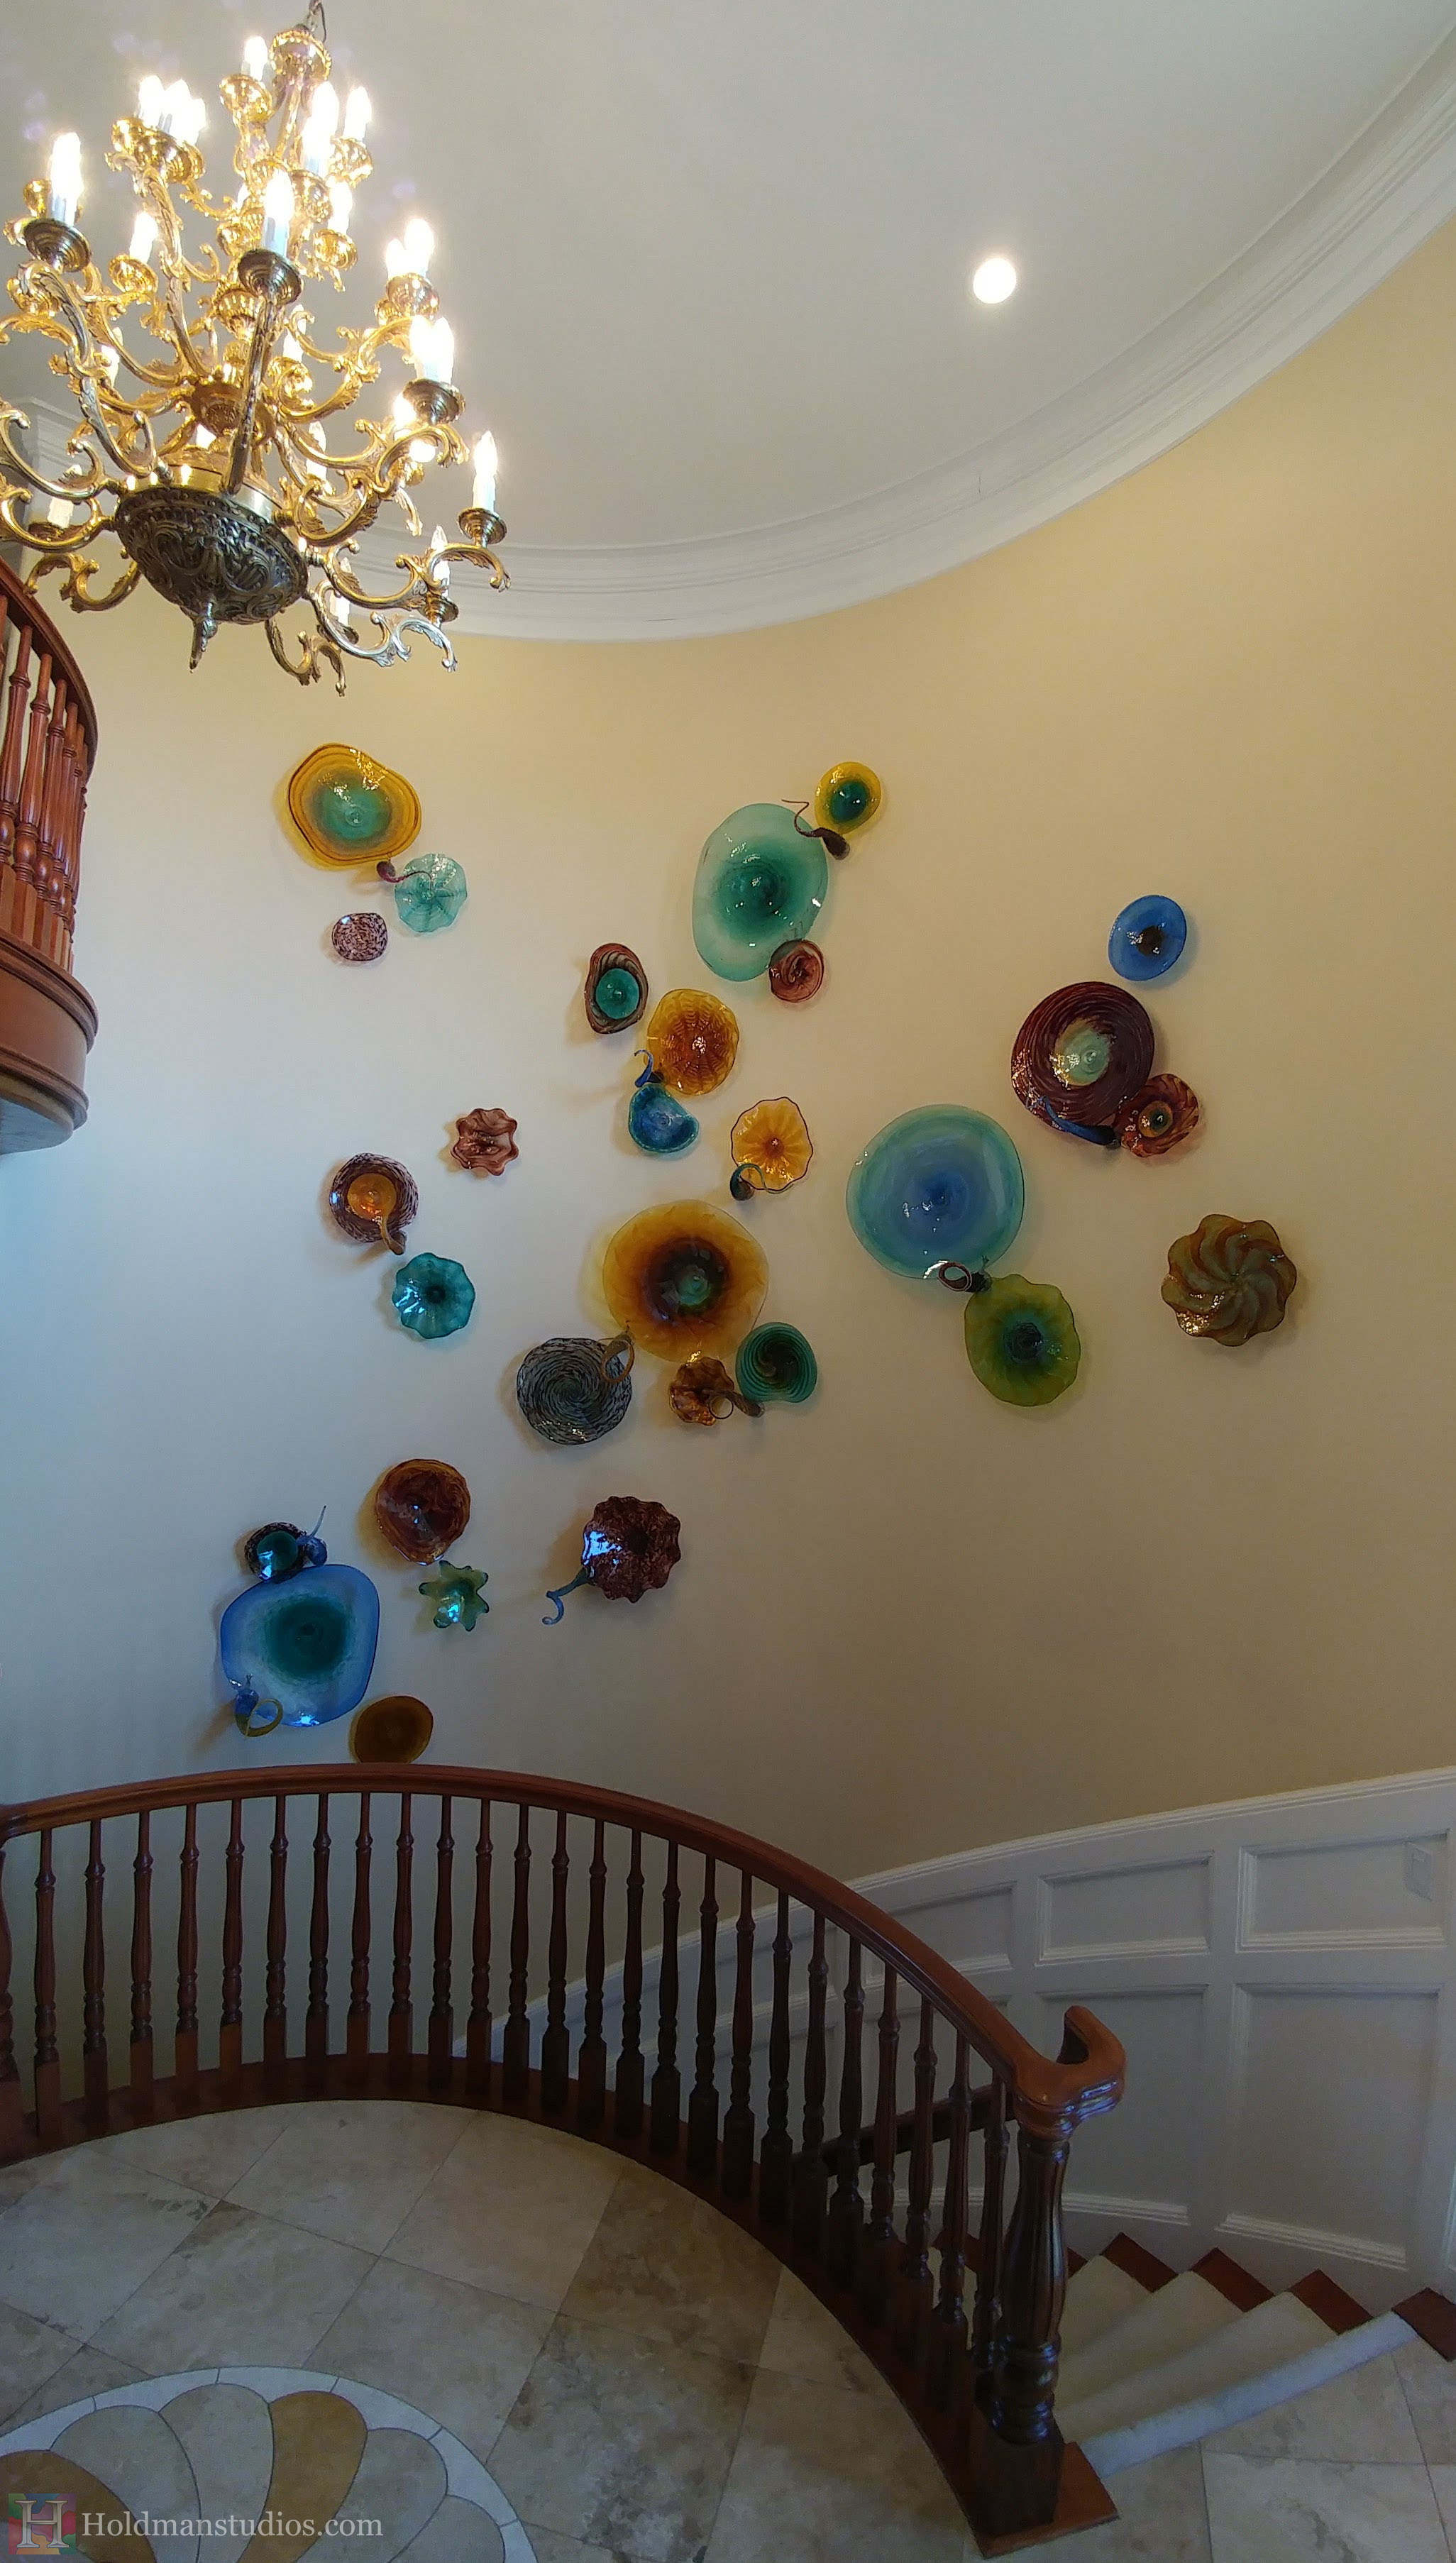 holdman-studios-hand-blown-glass-platters-bowls-tendrils-stair-wall-display-right-sideview.jpg